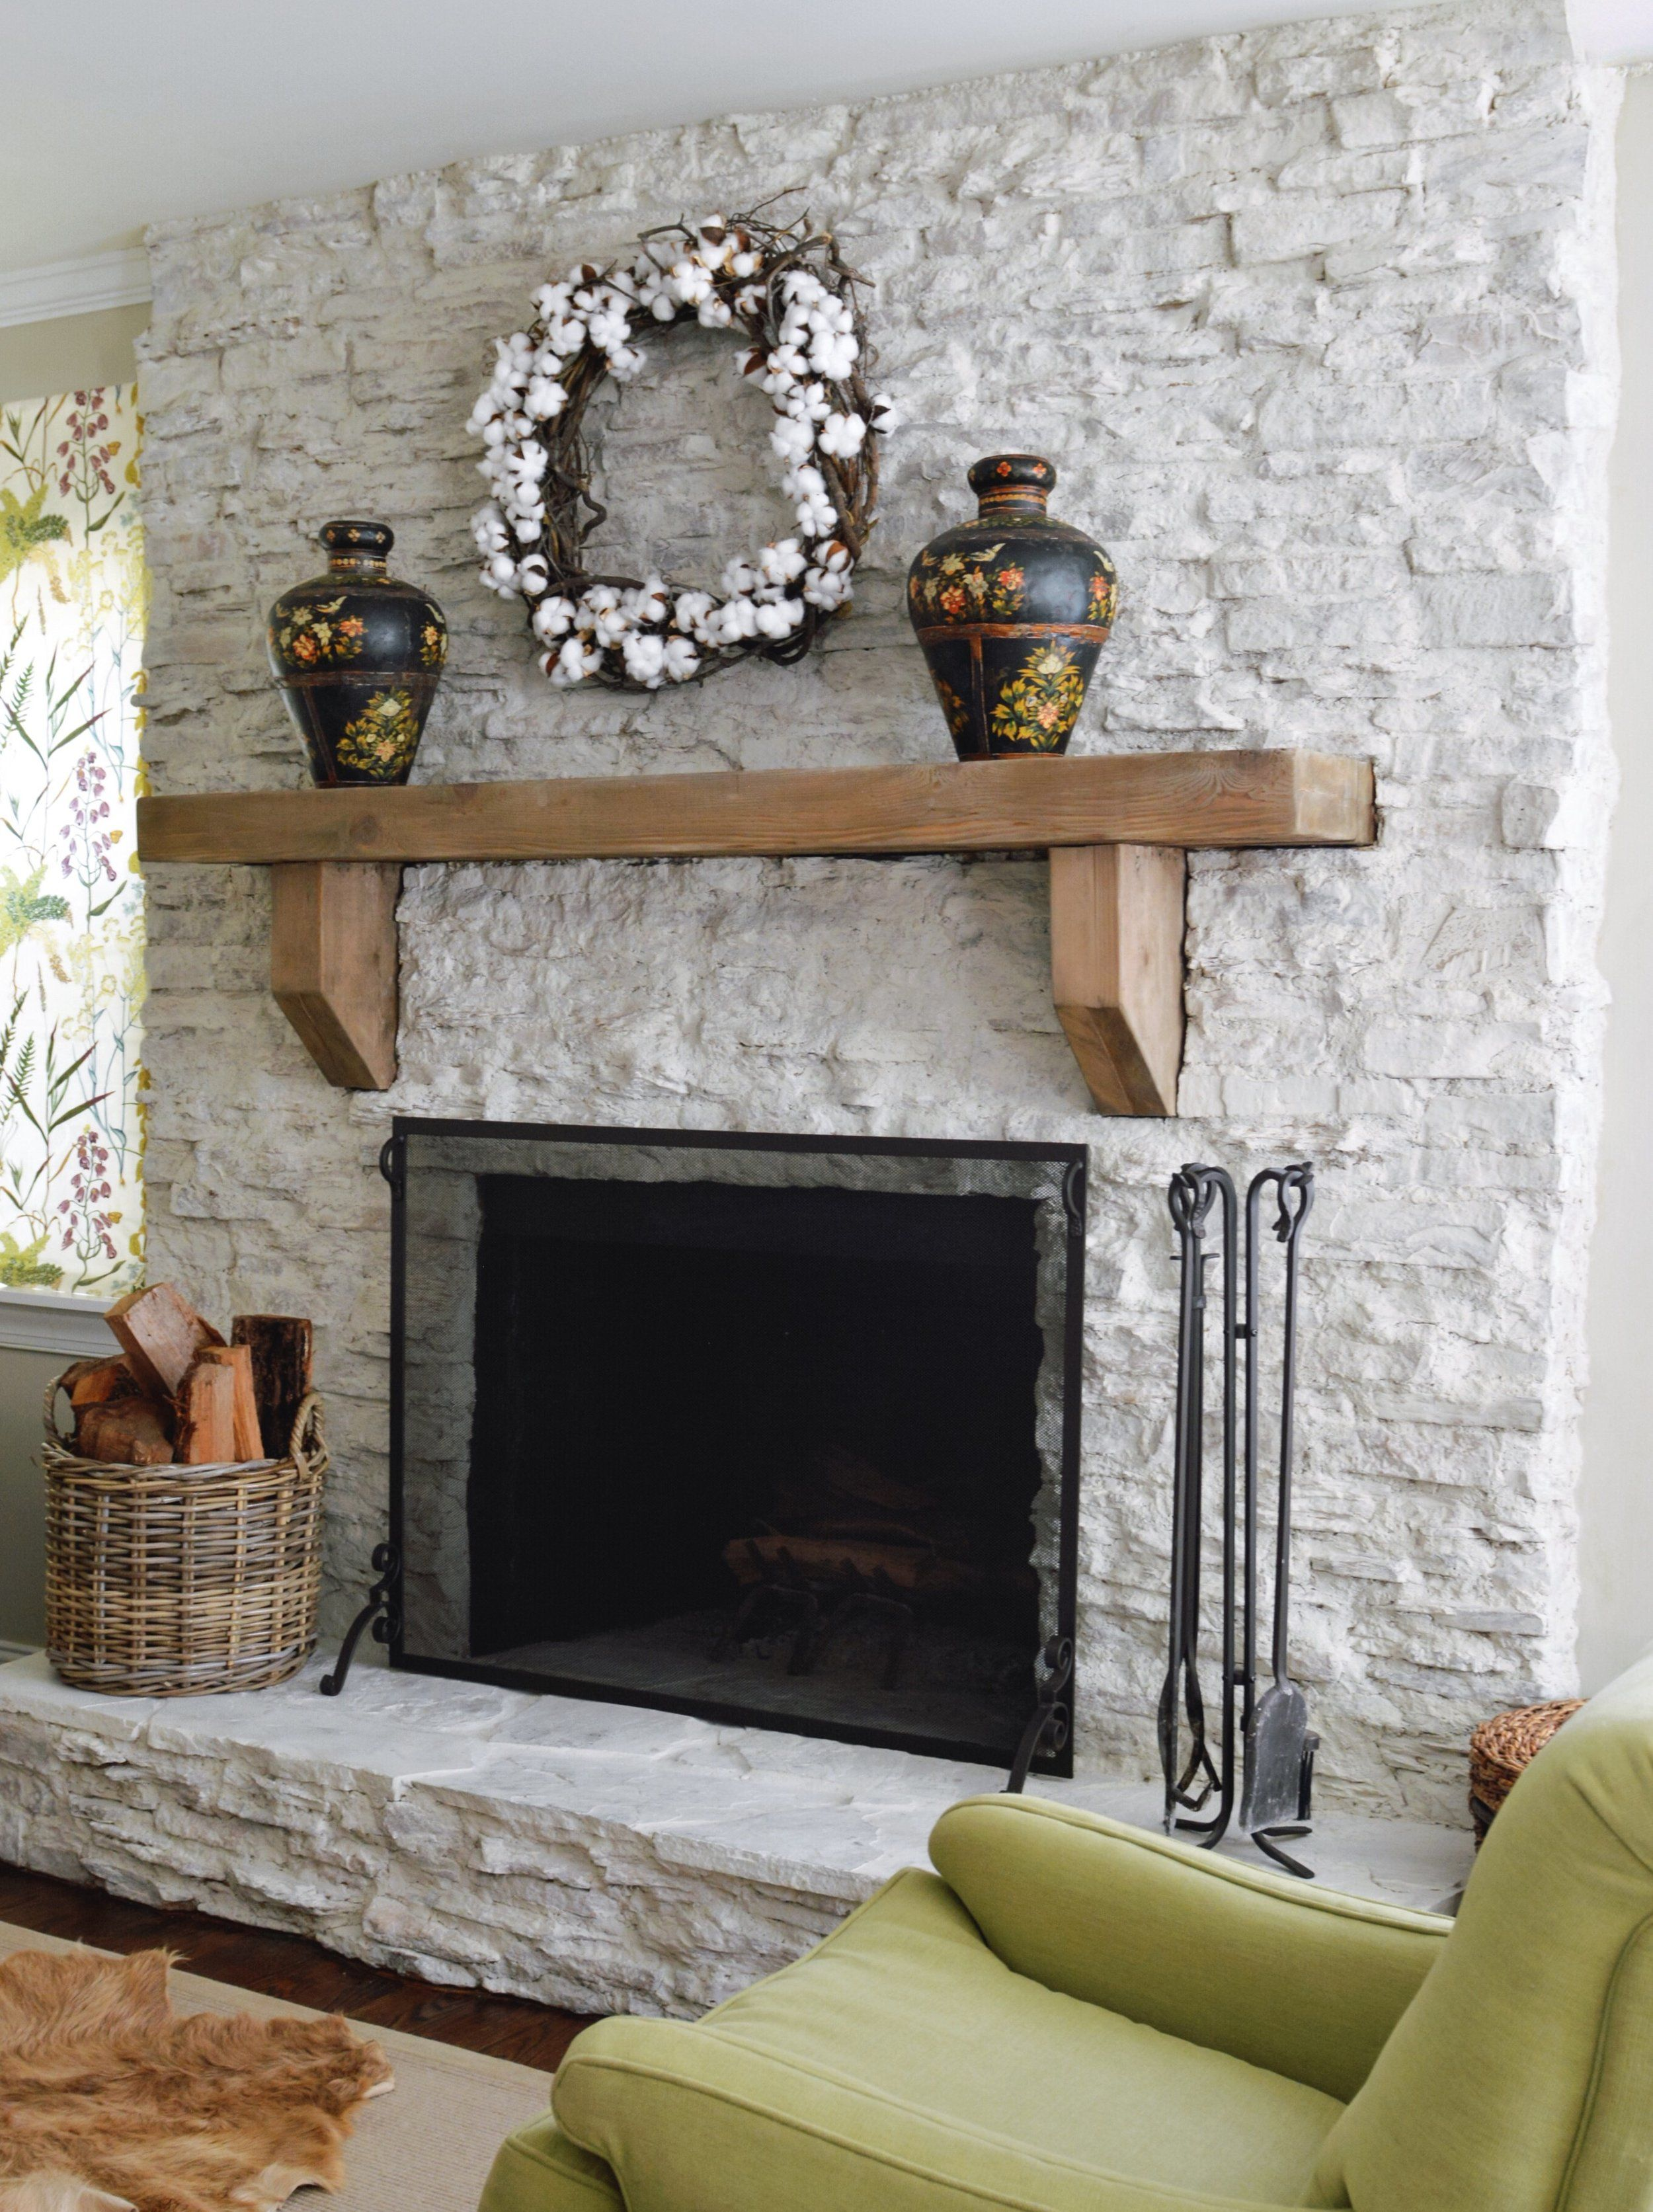 Before & After Our Fireplace Makeover — Hearth and Home